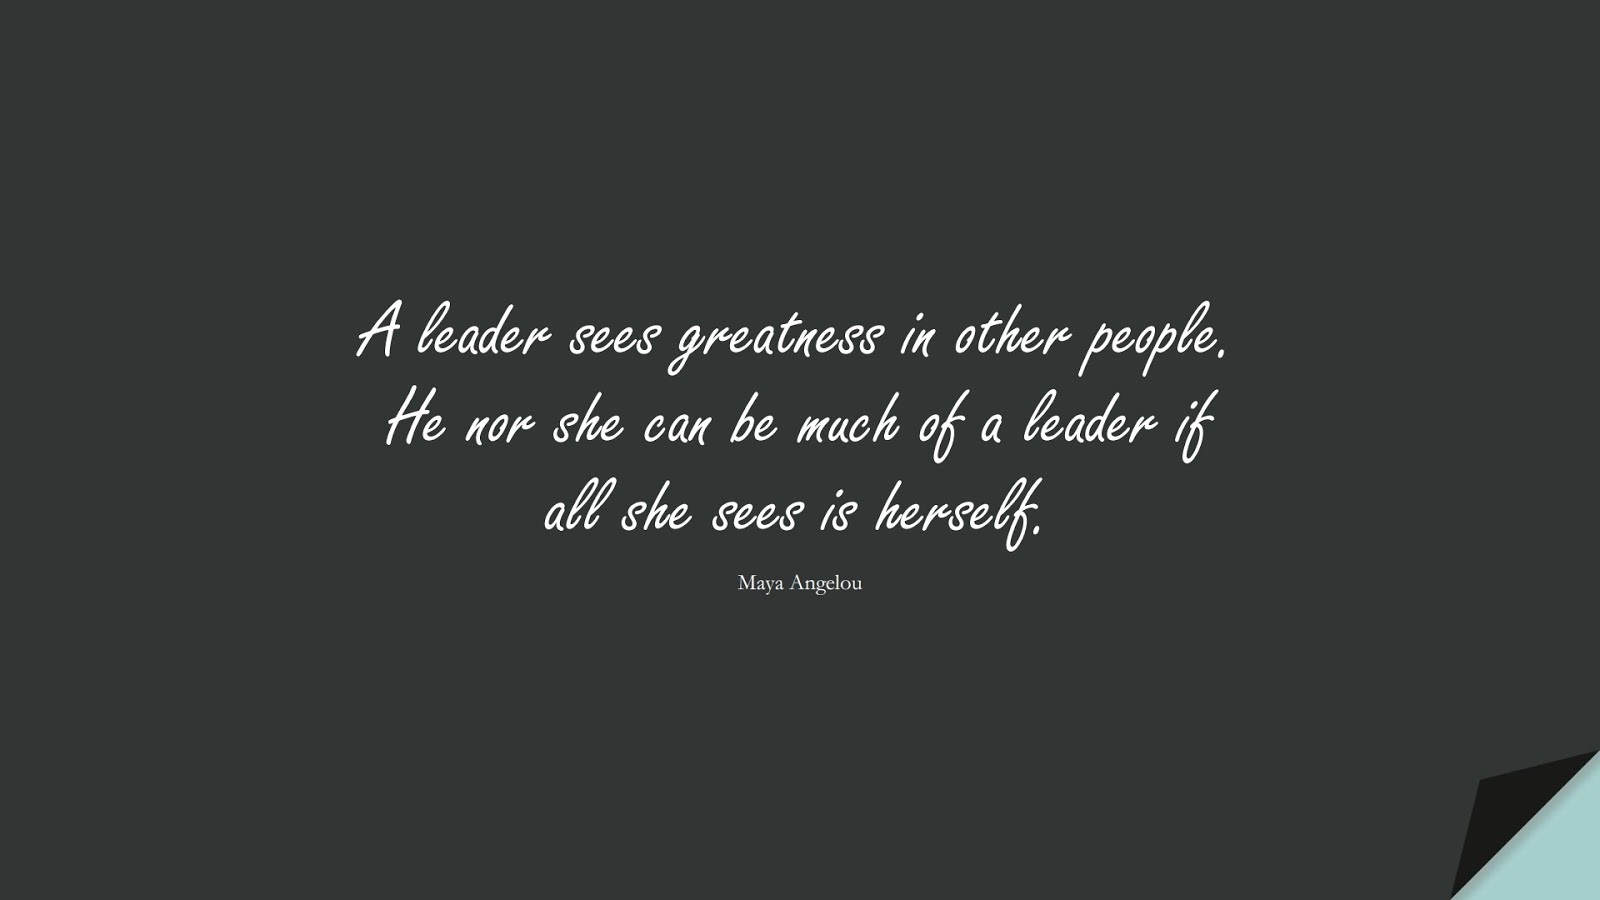 A leader sees greatness in other people. He nor she can be much of a leader if all she sees is herself. (Maya Angelou);  #MayaAngelouQuotes